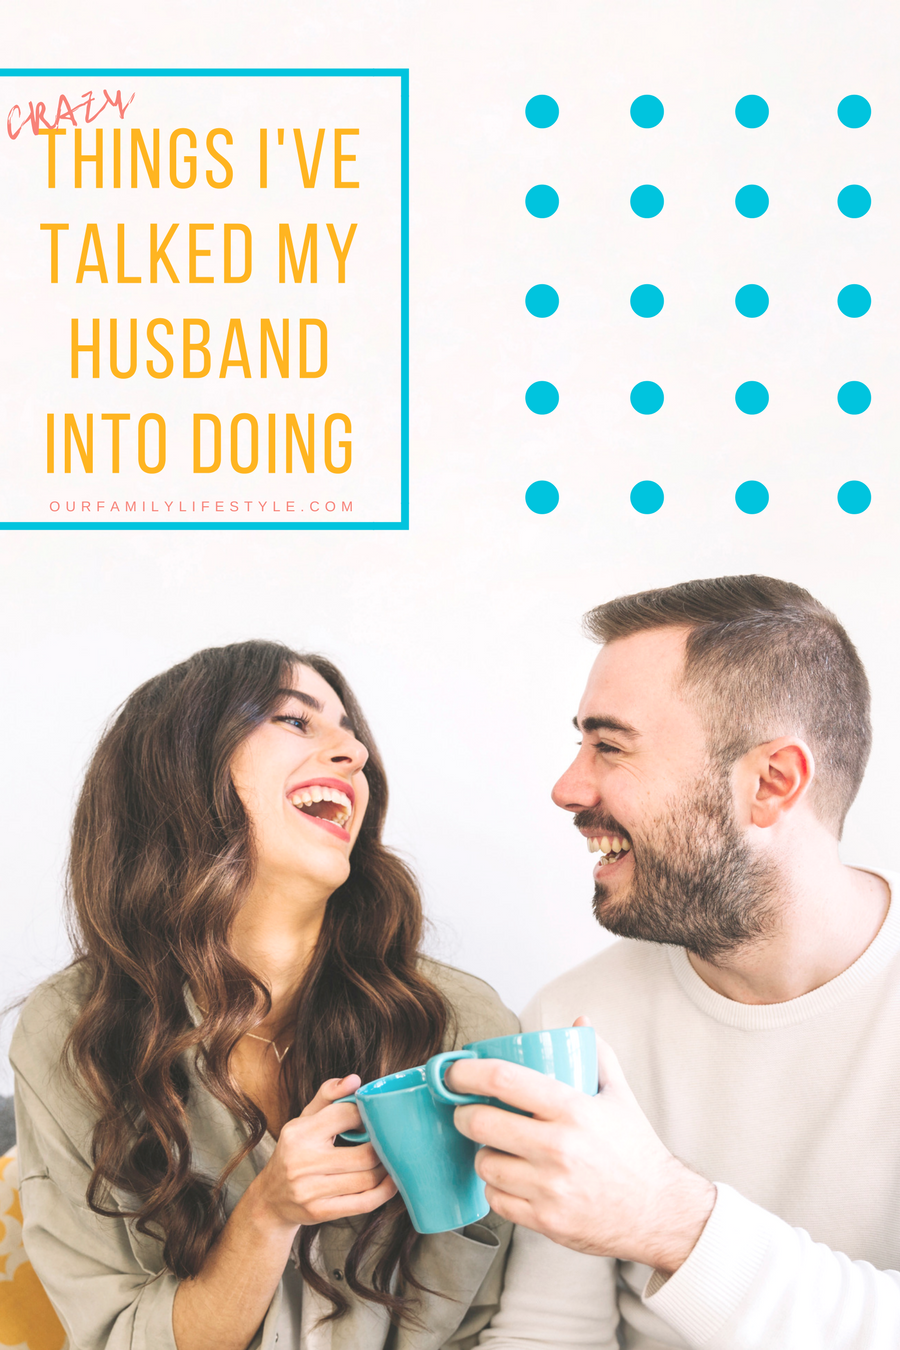 Crazy Things I've Talked My Husband into Doing